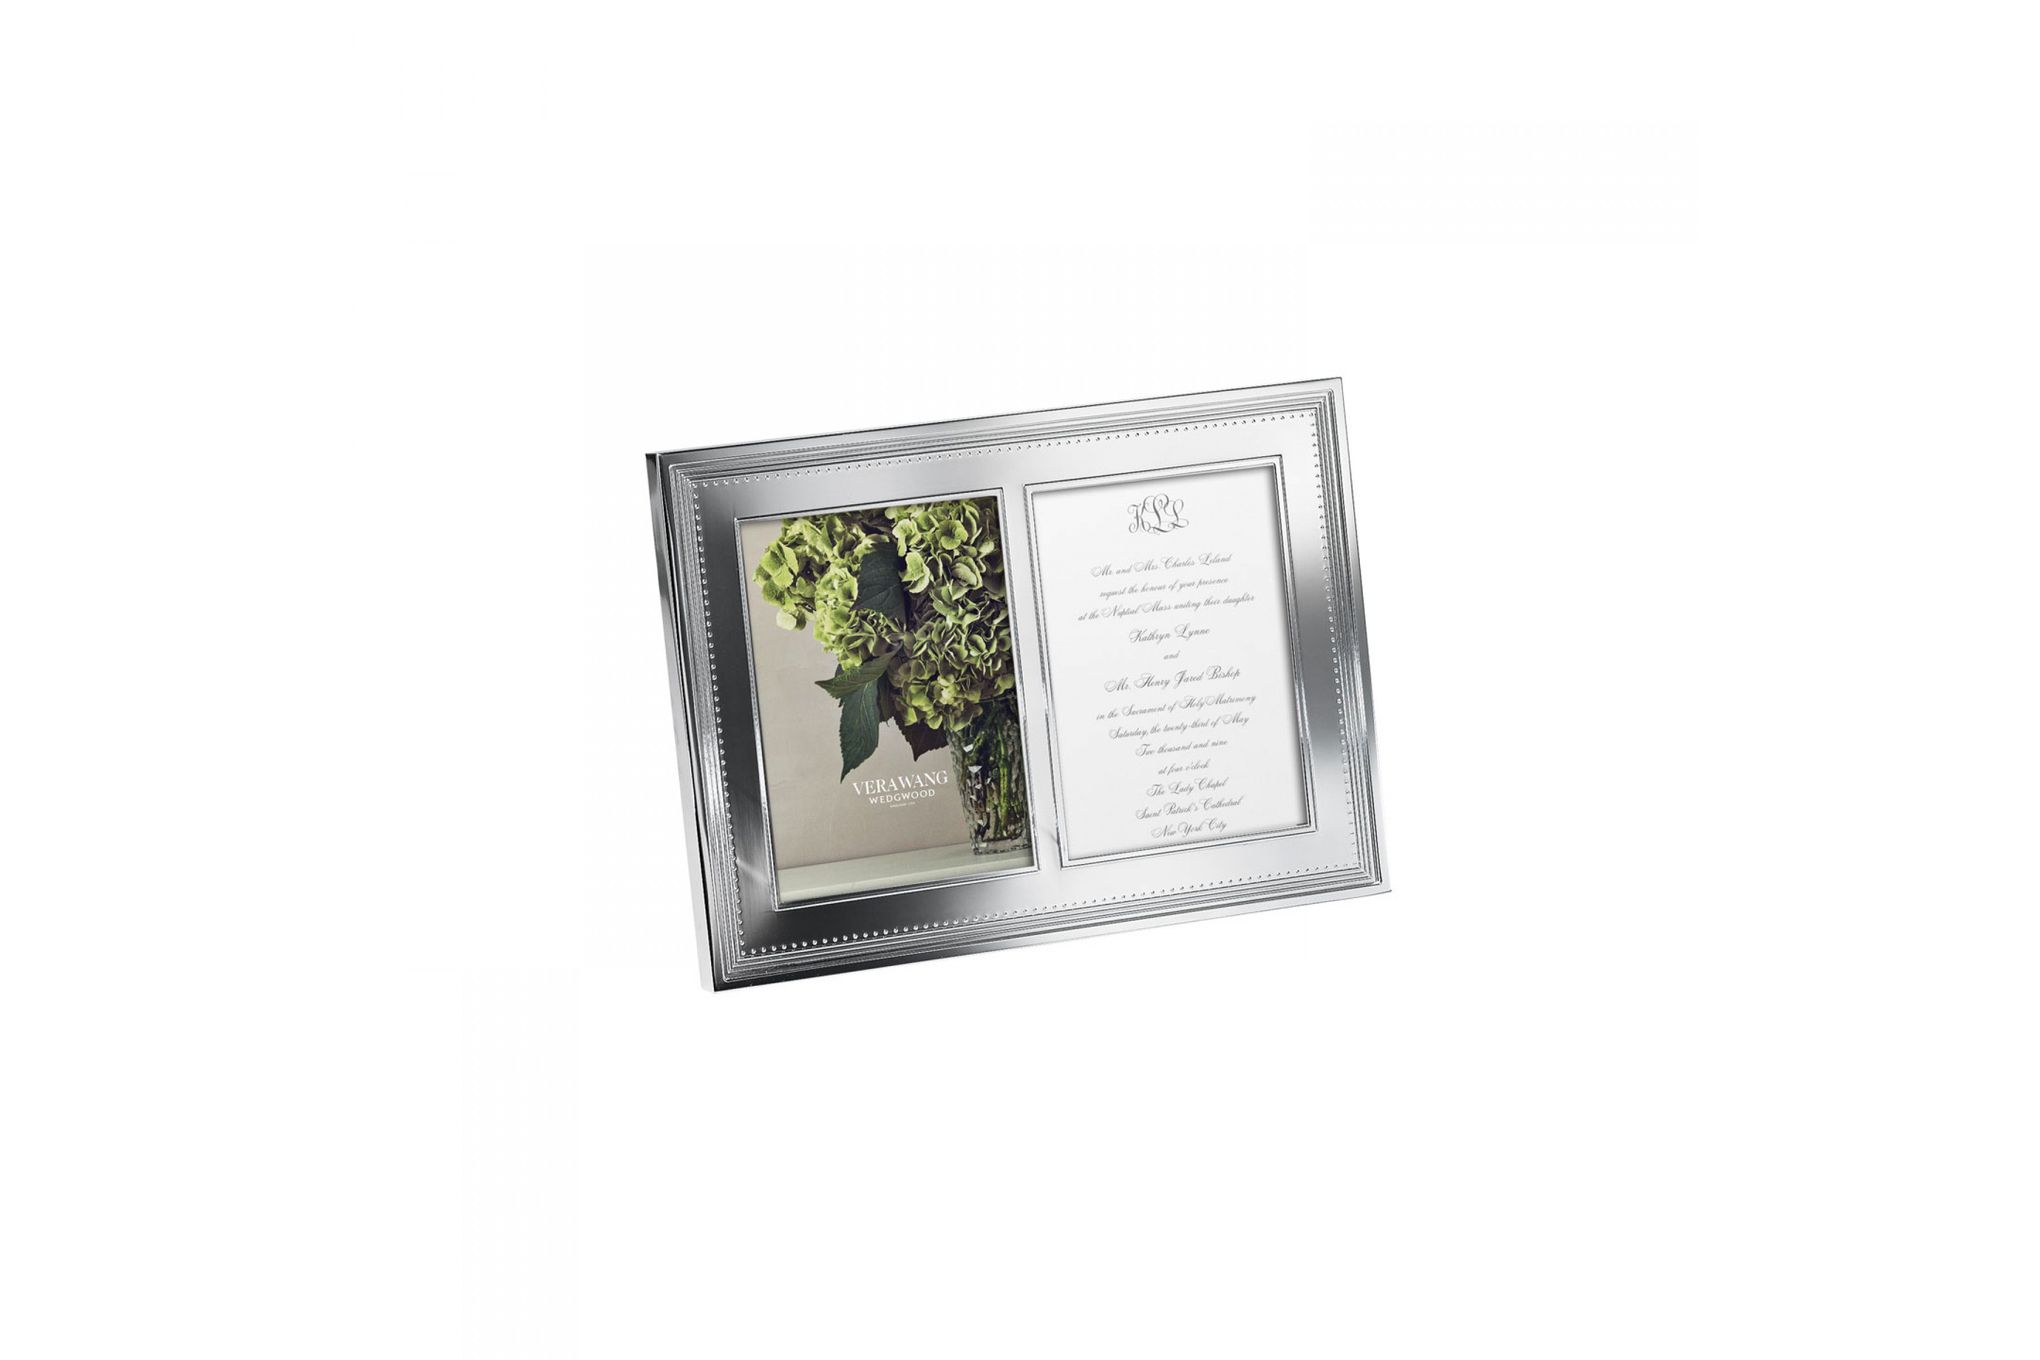 """Vera Wang for Wedgwood Gifts & Accessories Double Invitation Frame Grosgrain 5 x 7"""" thumb 1"""